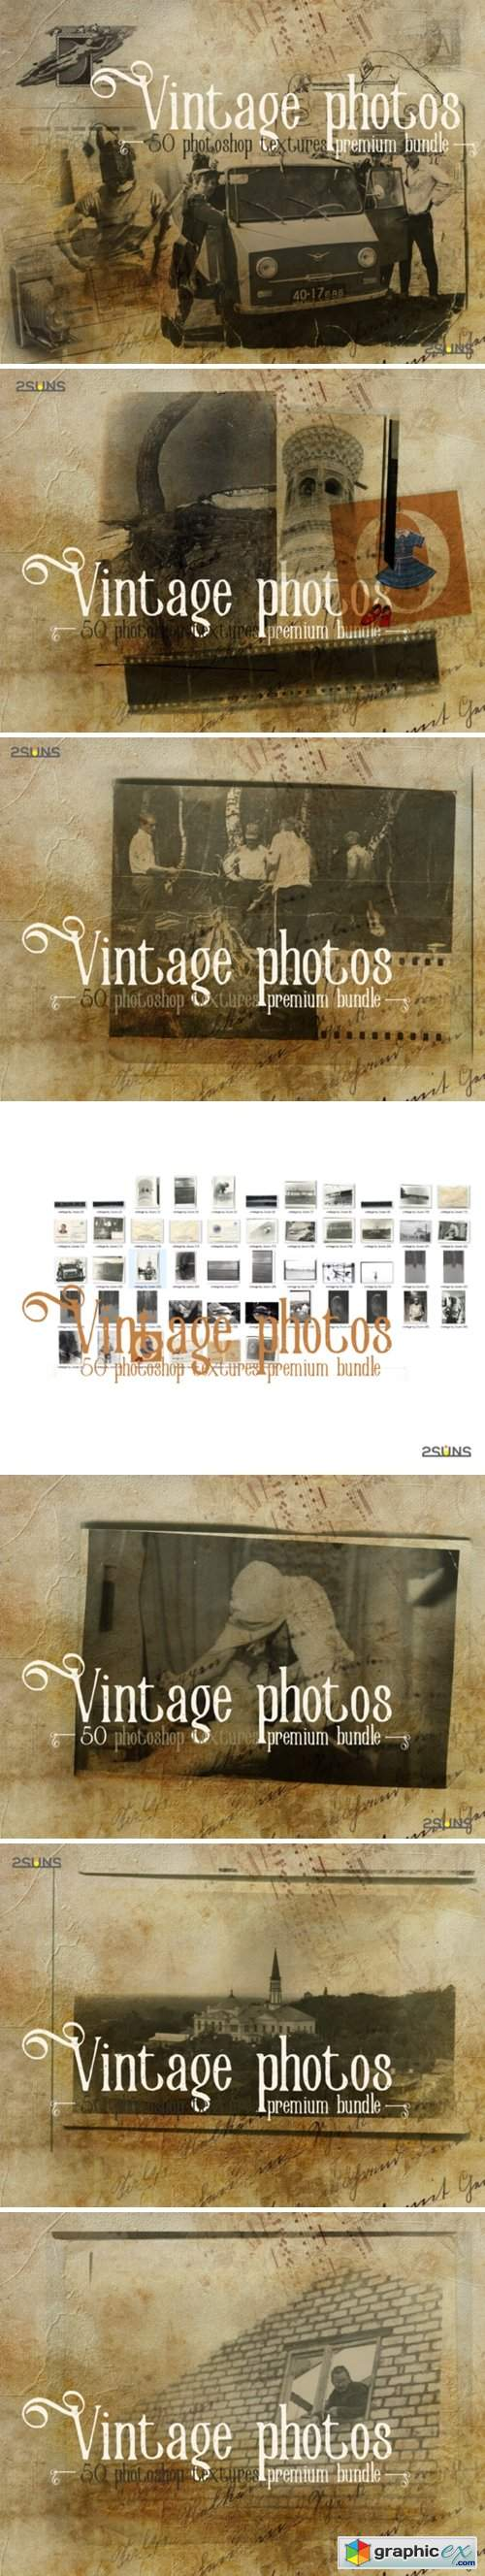 Premium Bundle Vintage Photoshop Texture